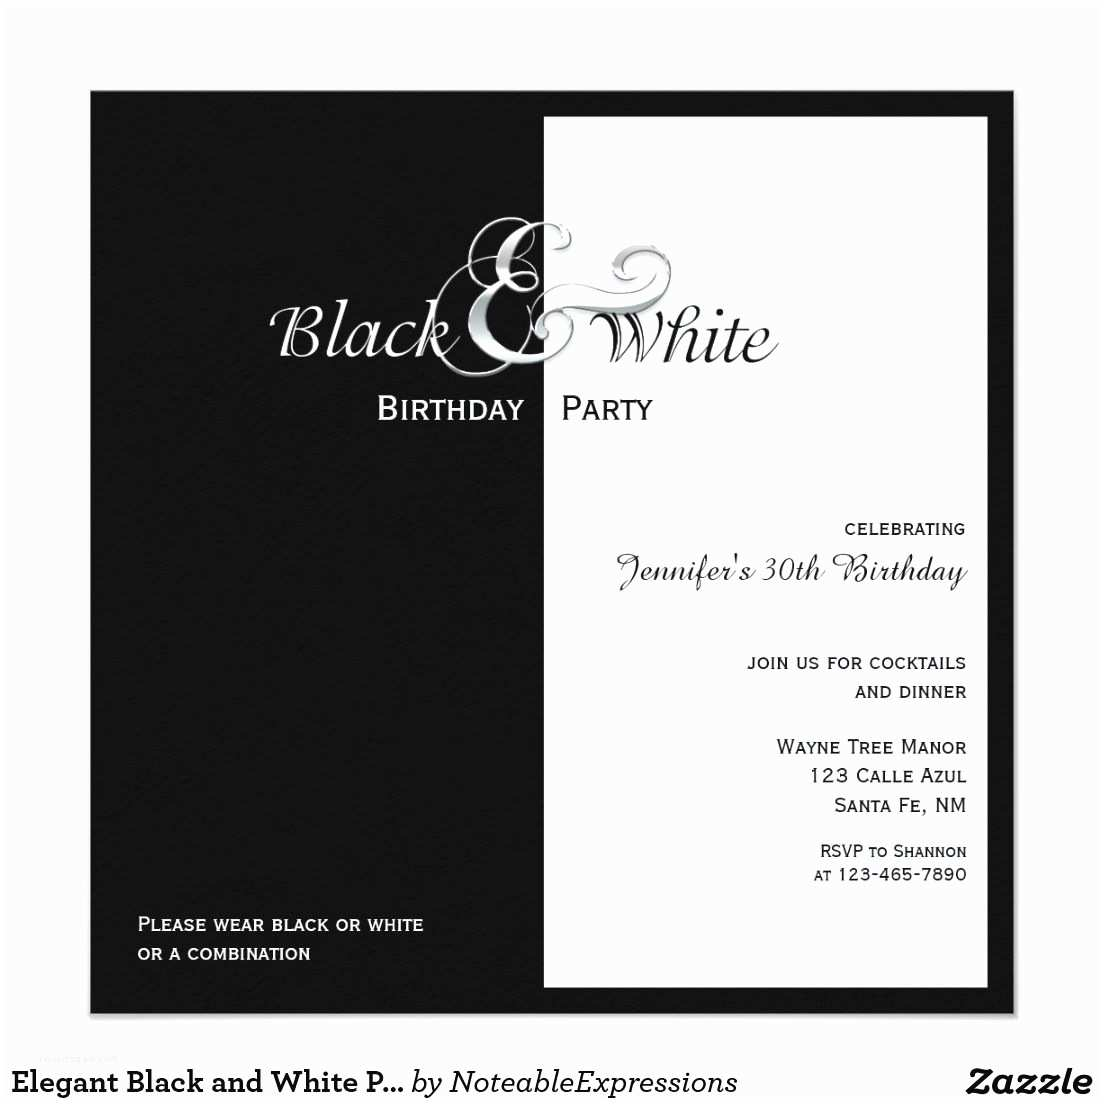 Black and White Birthday Invitations Elegant Black and White Party Card